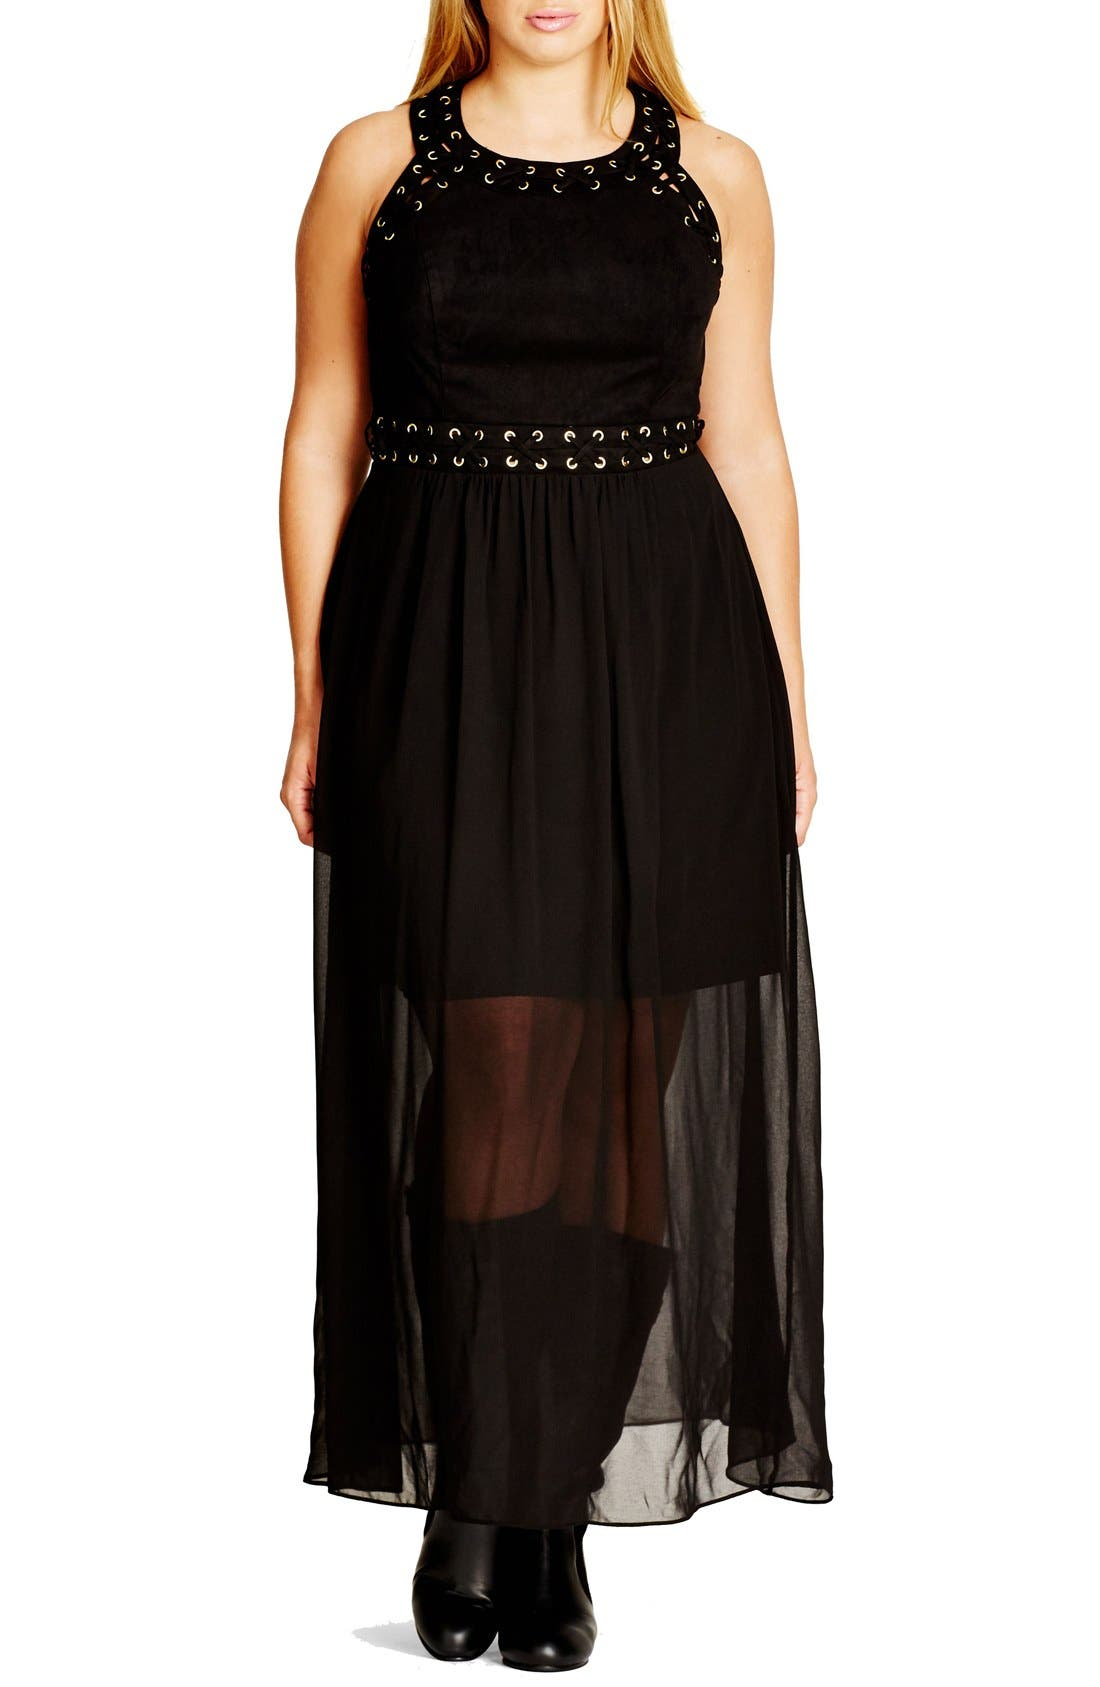 Main Image - City Chic 'Rhianna' Lace-Up Trim Faux Suede & Chiffon Maxi Dress (Plus Size)